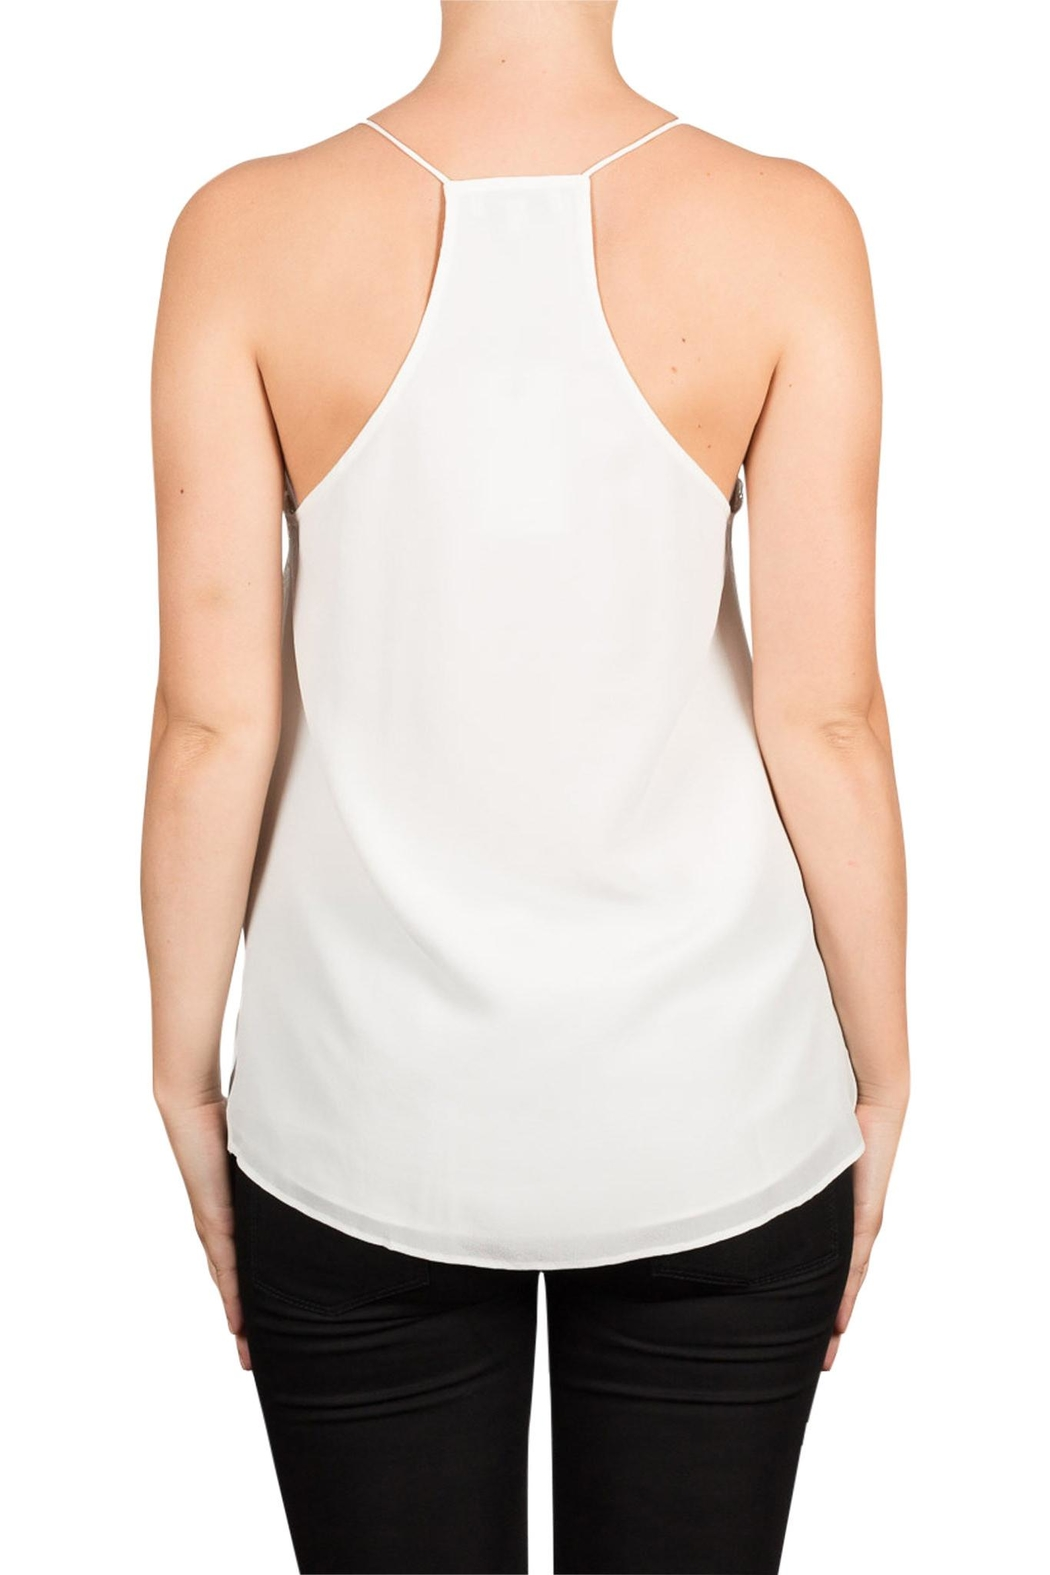 Cami NYC Racerback Lace Camisole - Front Full Image